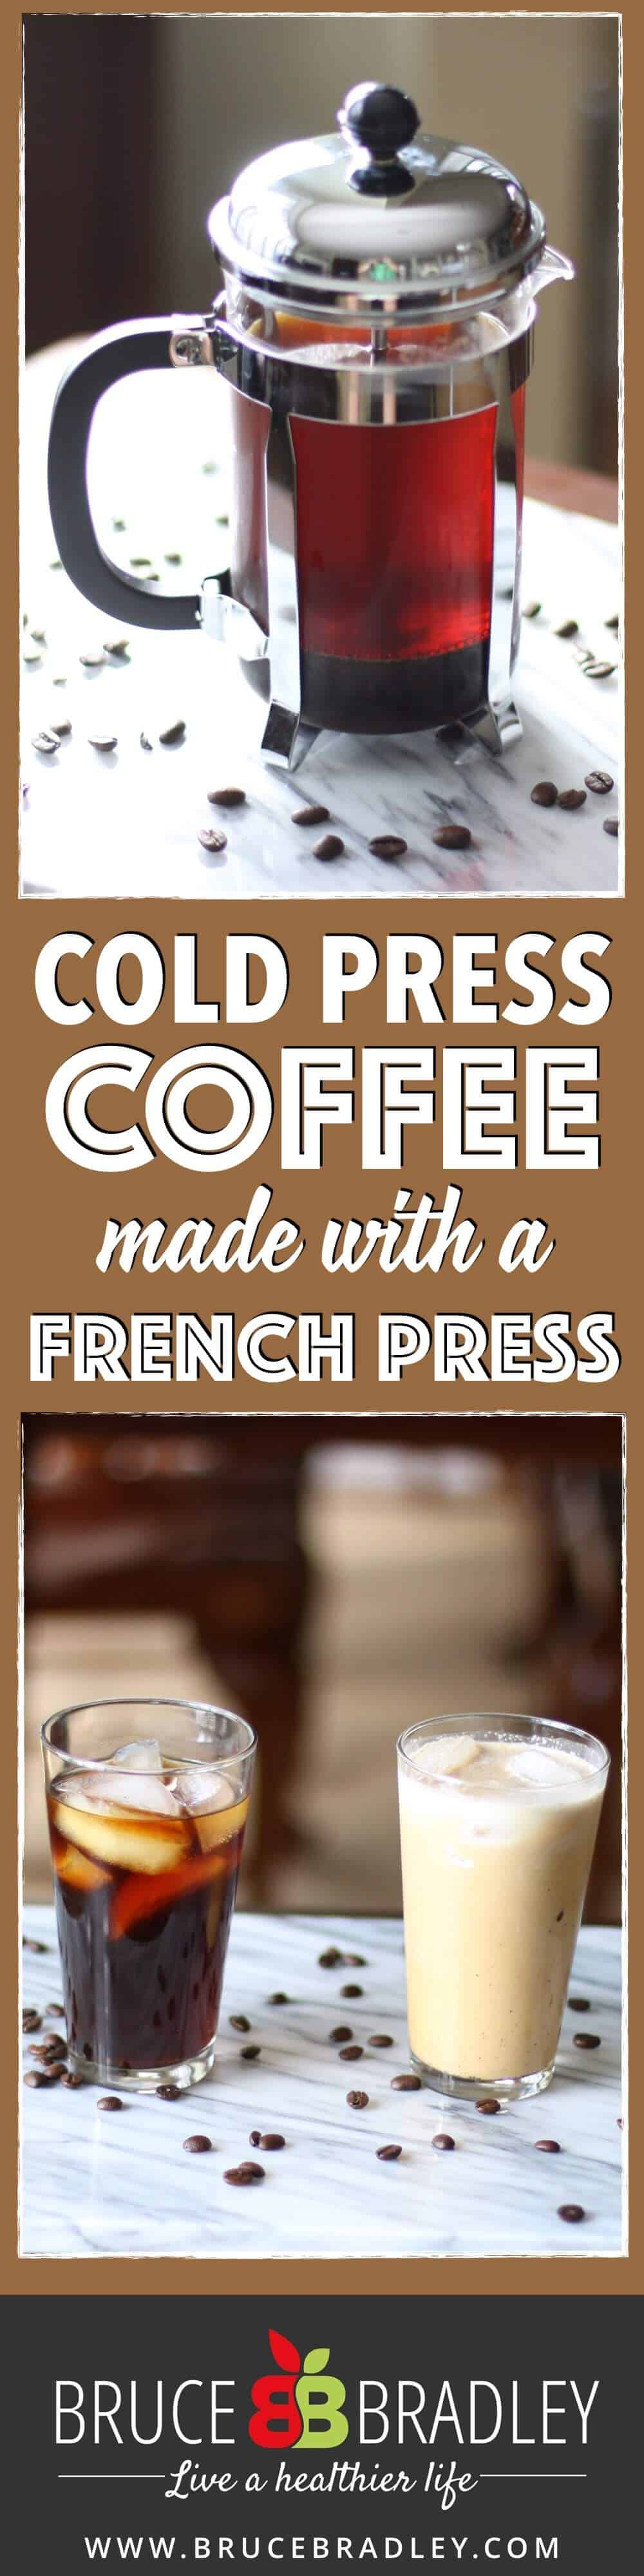 Cold Press Coffee is a deliciously cool way to enjoy coffee that's naturally sweeter and a little more caffeinated. Now you can enjoy the great flavor of cold press coffee at home using a French press!